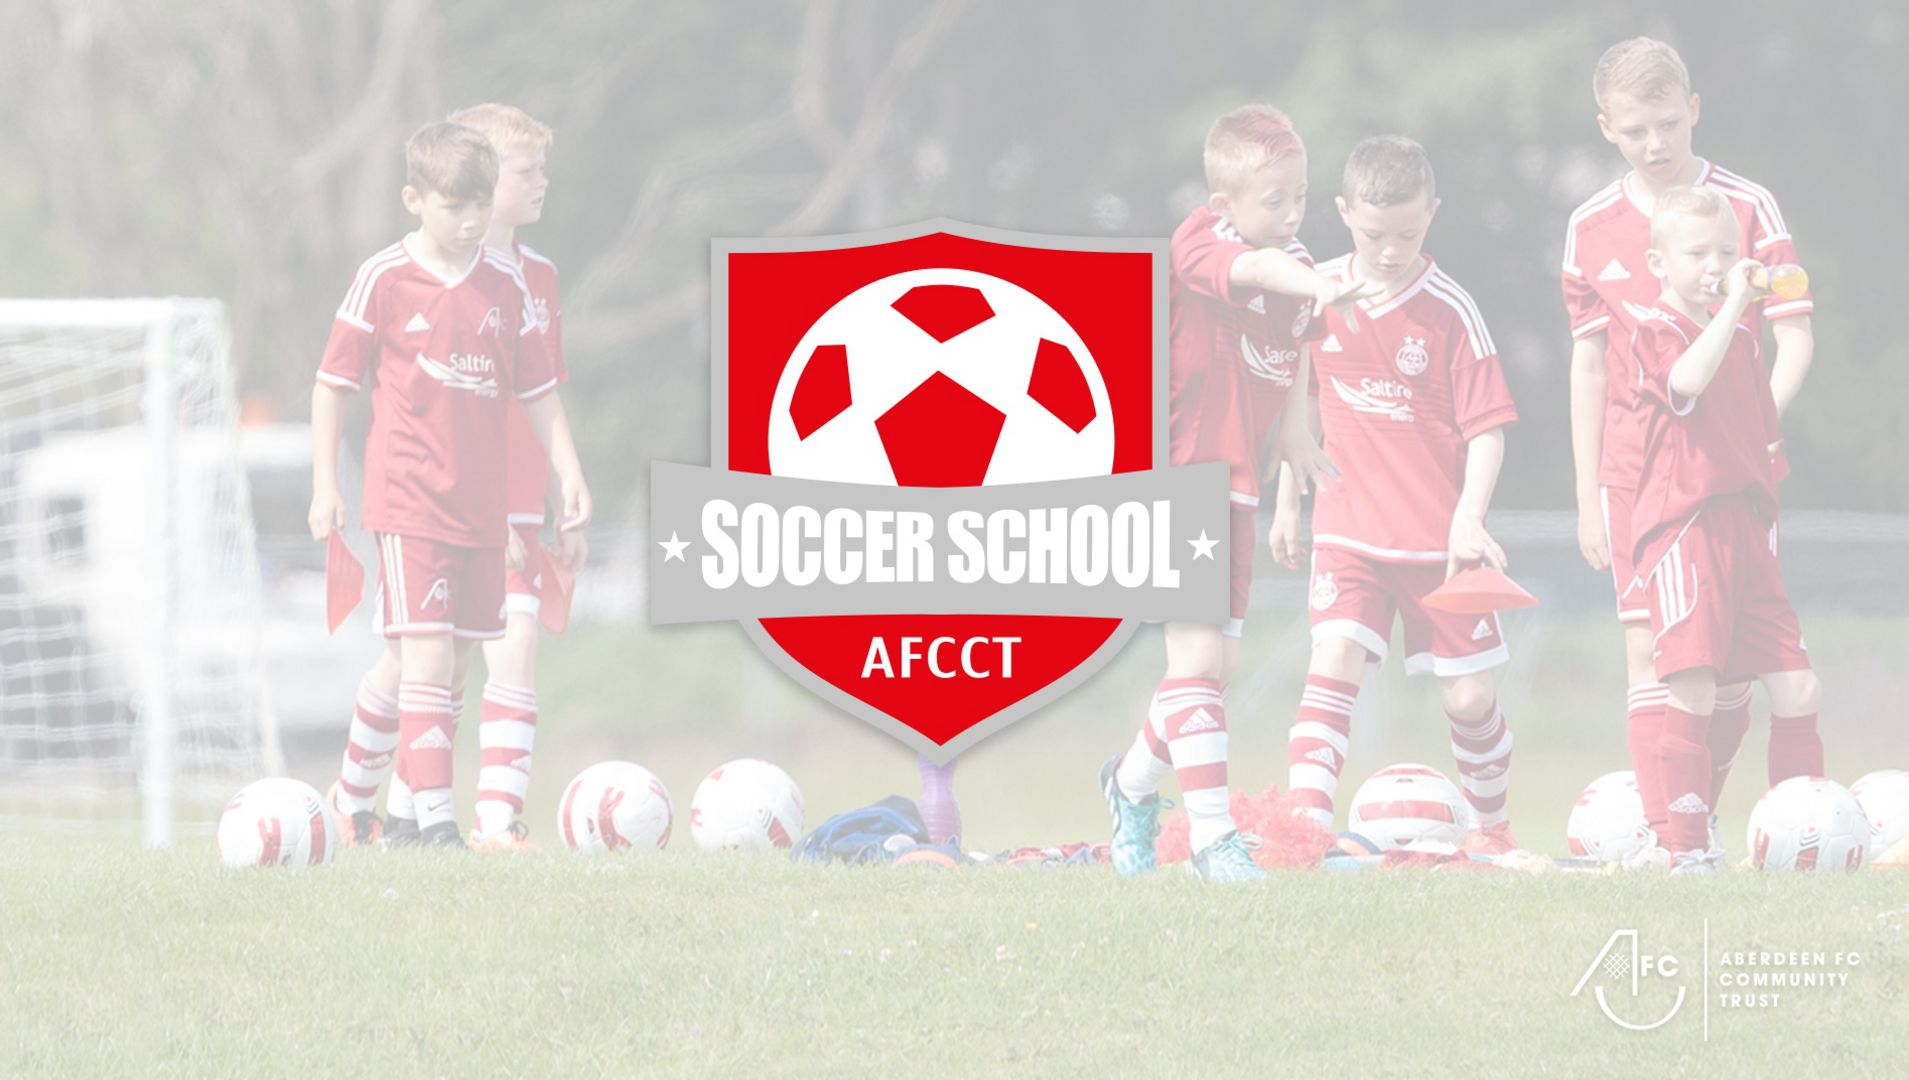 COMPETITION | Sign up for Soccer School to win the brand-new AFC away kit!